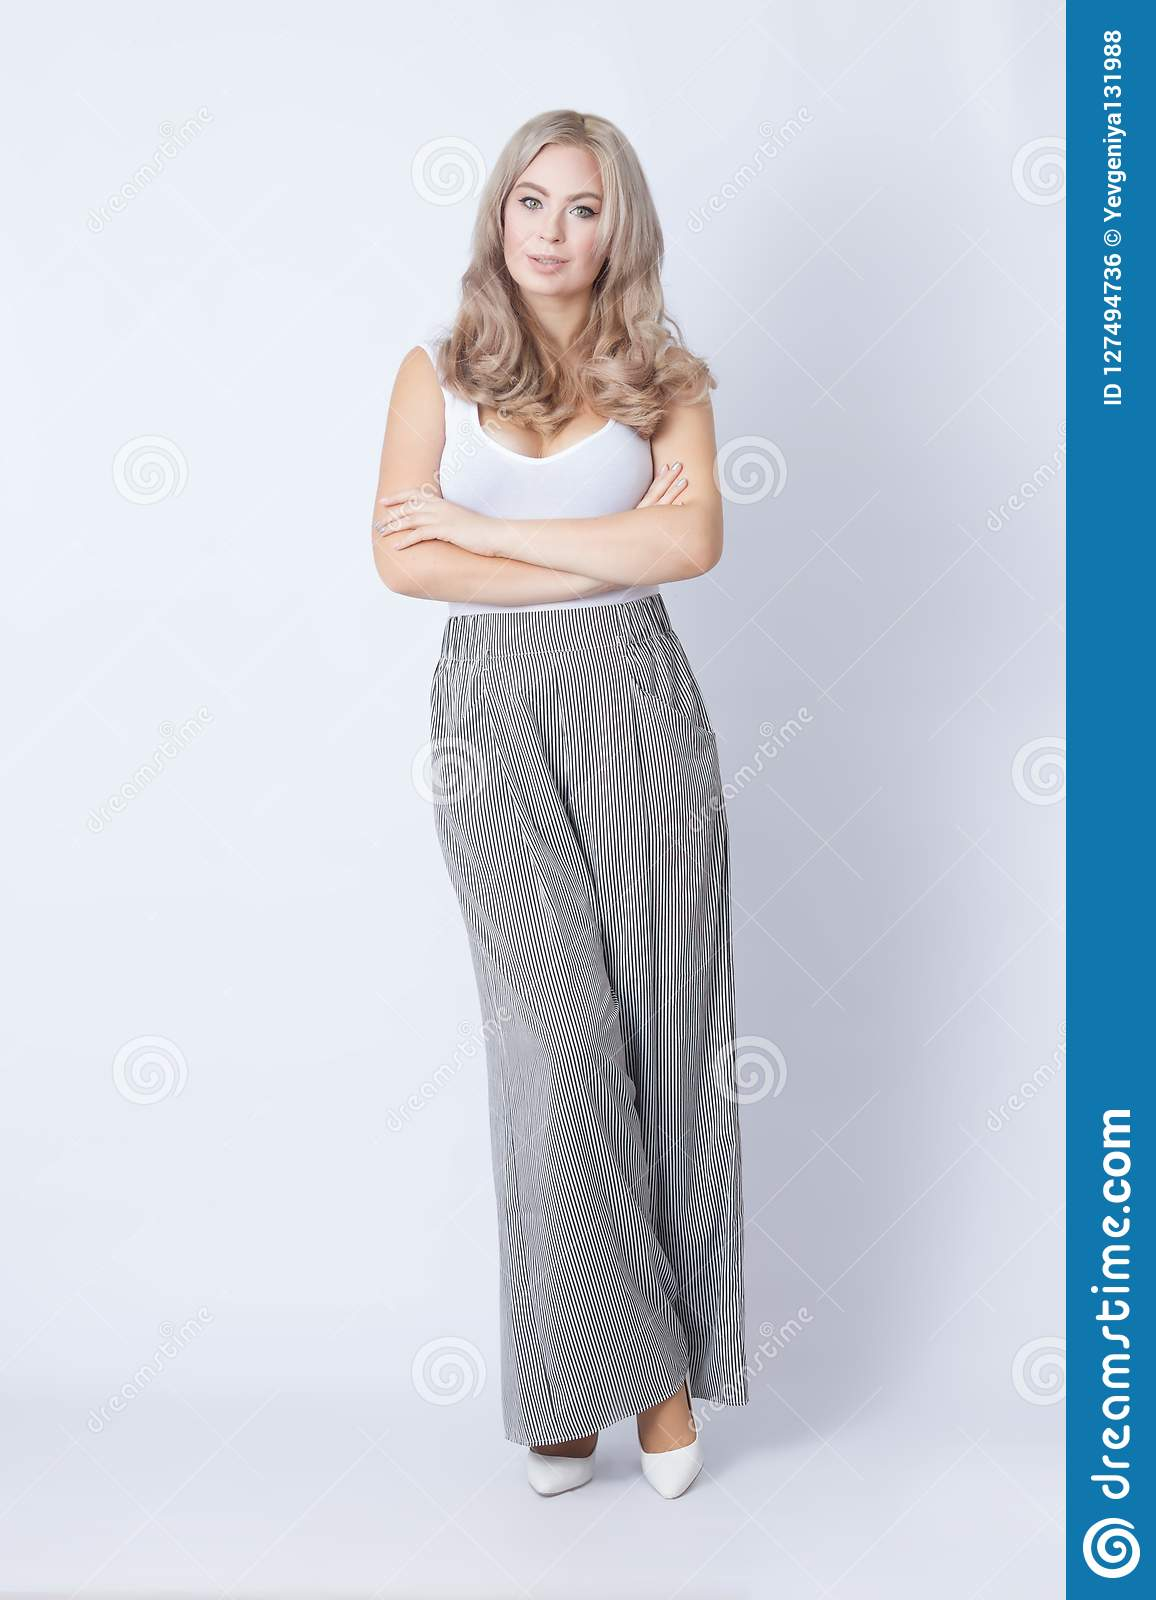 Full length portrait of cheerful blonde woman